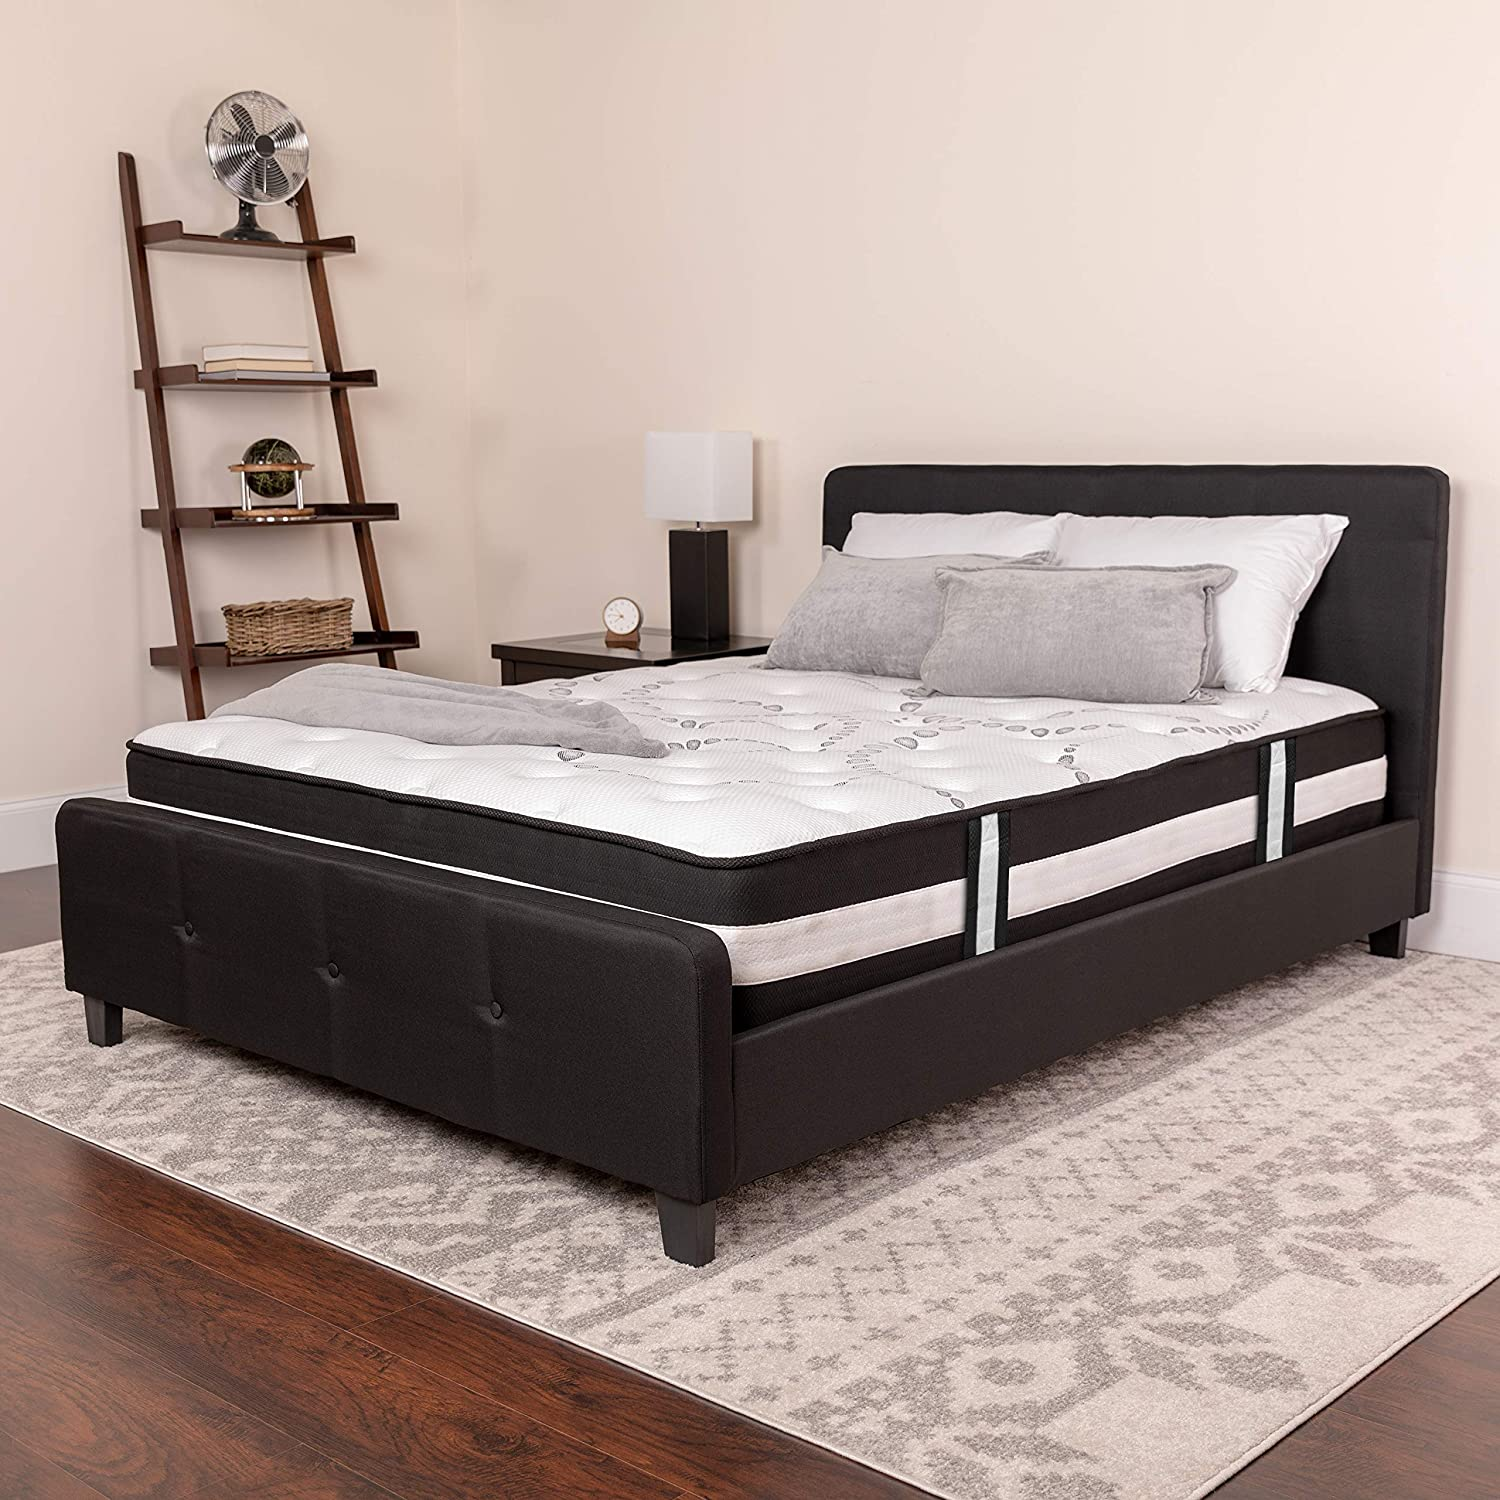 Flash Furniture Full Size Mattress Full Size High Density Foam and Pocket Spring Mattress in a Box